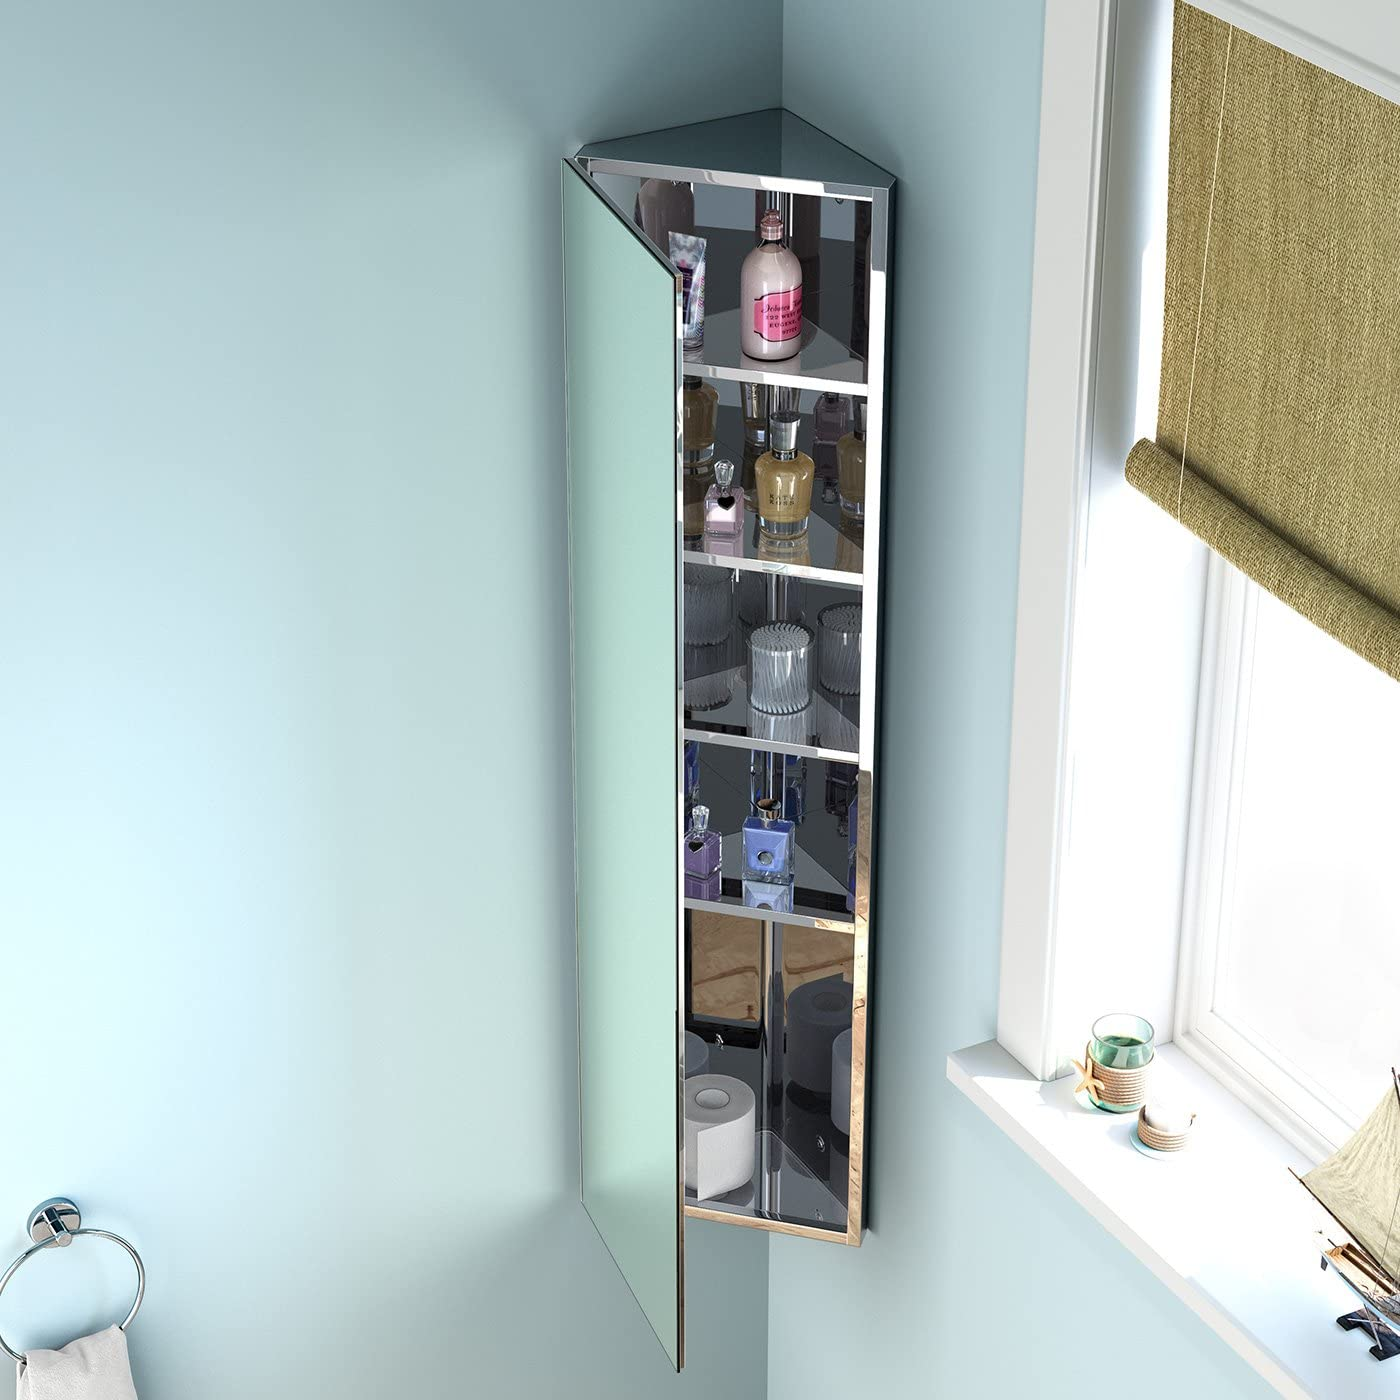 1200 X 300 Tall Stainless Steel Corner Bathroom Mirror Cabinet Modern Storage Unit Mc105 Ibathuk Amazon Co Uk Diy Tools